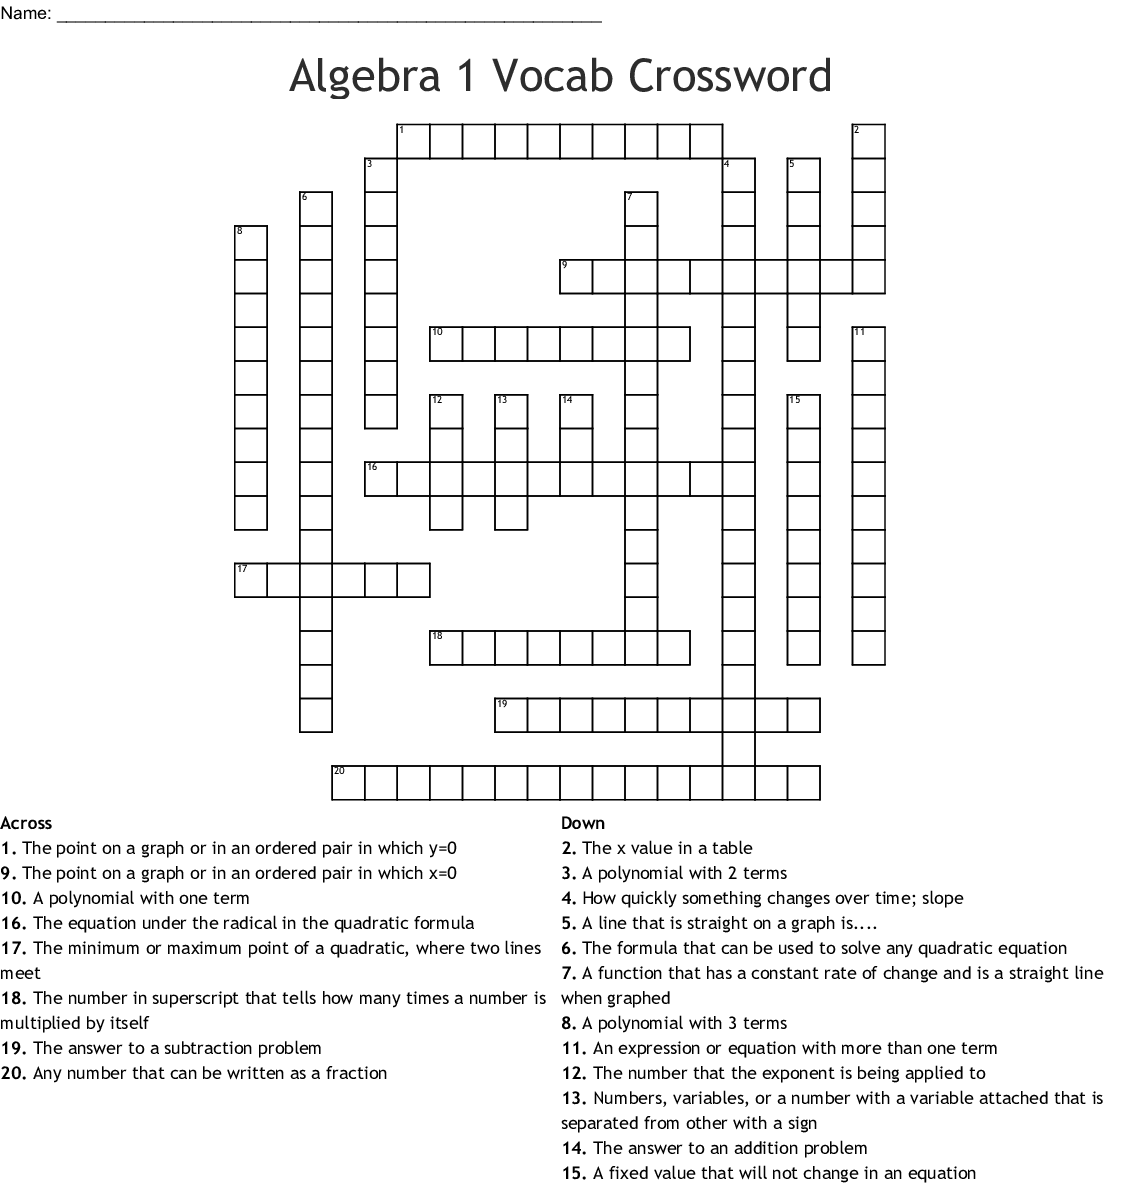 Algebra 1 Vocab Crossword - WordMint